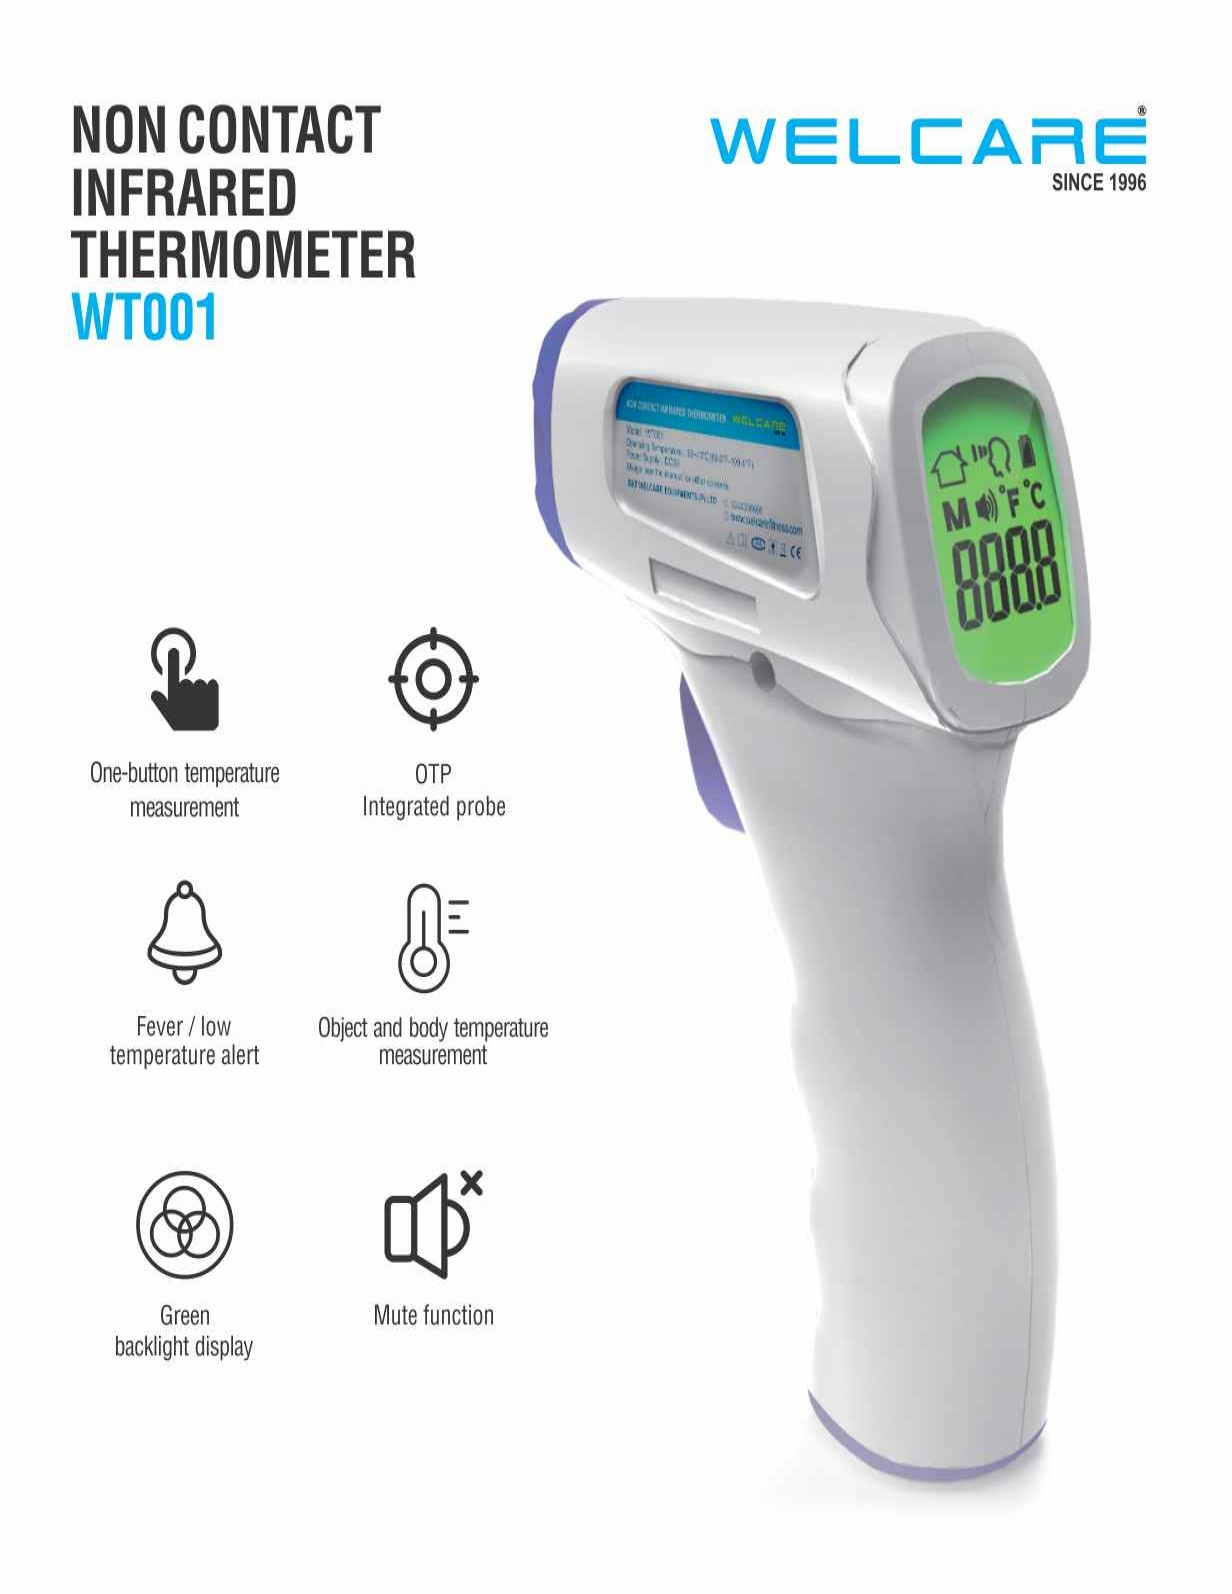 Non contact infrared thermometer WT001